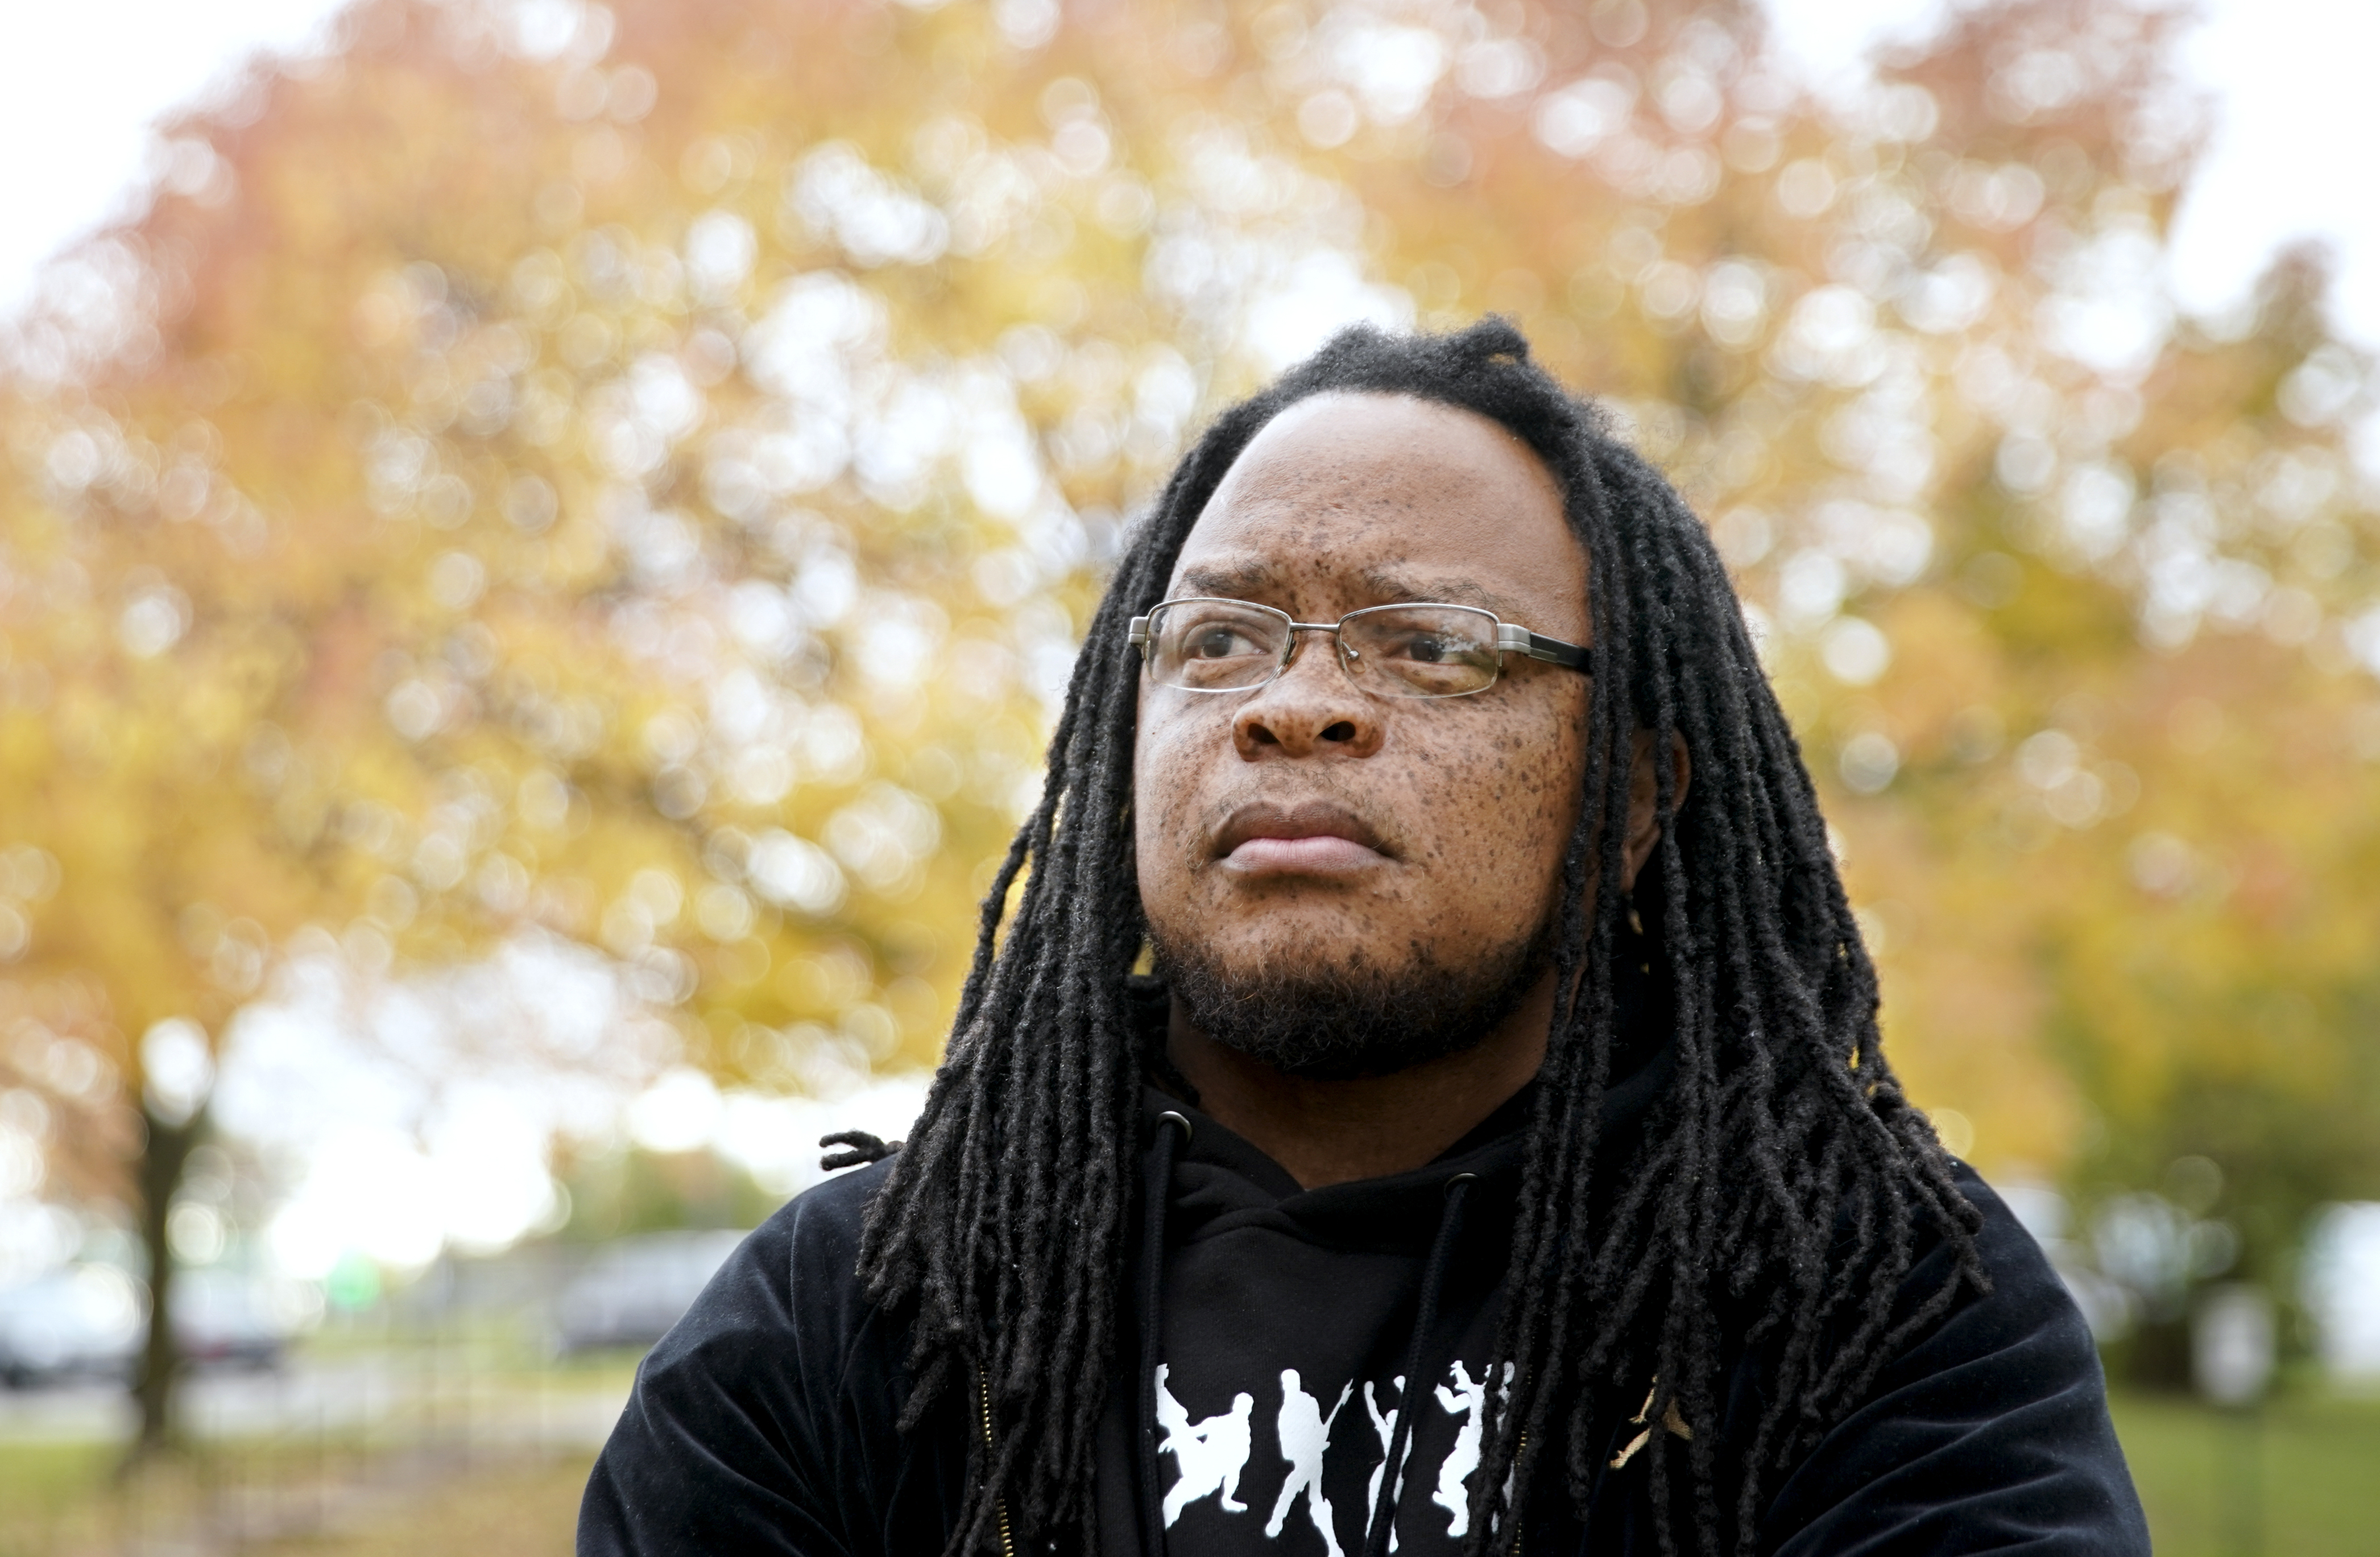 FILE - In this Oct. 17, 2019, file photo, Marlon Anderson poses for a photo in Madison, Wis. A Wisconsin school district is rehiring Anderson, a security guard after he was fired last week for repeating a racial slur while telling a student not to use it, a union official said Monday, Oct. 21. (Steve Apps/Wisconsin State Journal via AP)